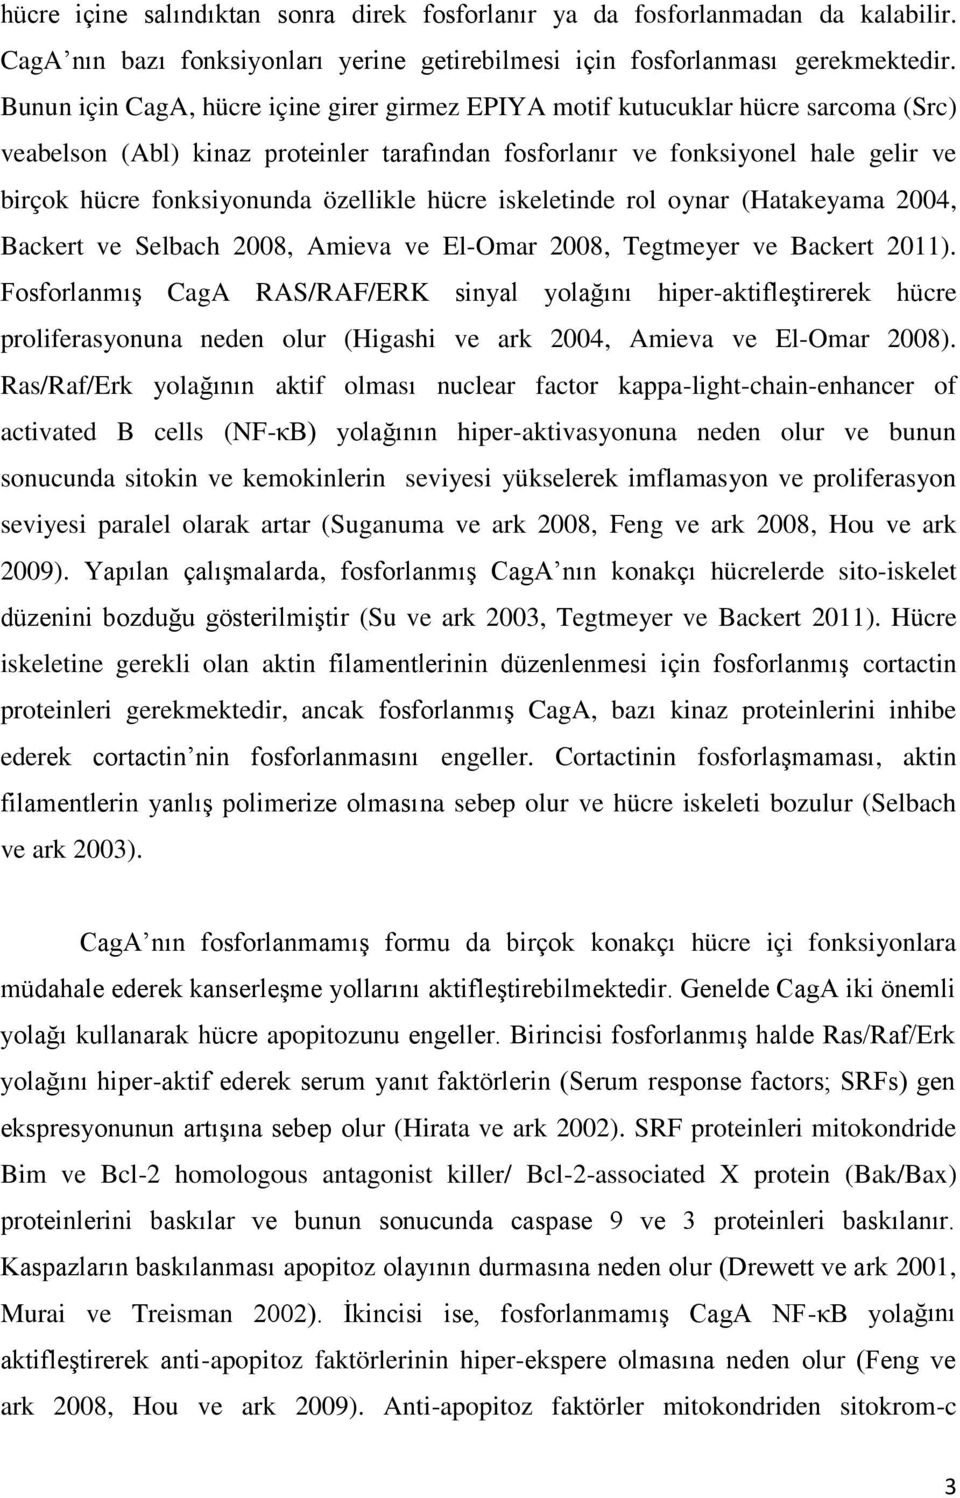 özellikle hücre iskeletinde rol oynar (Hatakeyama 2004, Backert ve Selbach 2008, Amieva ve El-Omar 2008, Tegtmeyer ve Backert 2011).